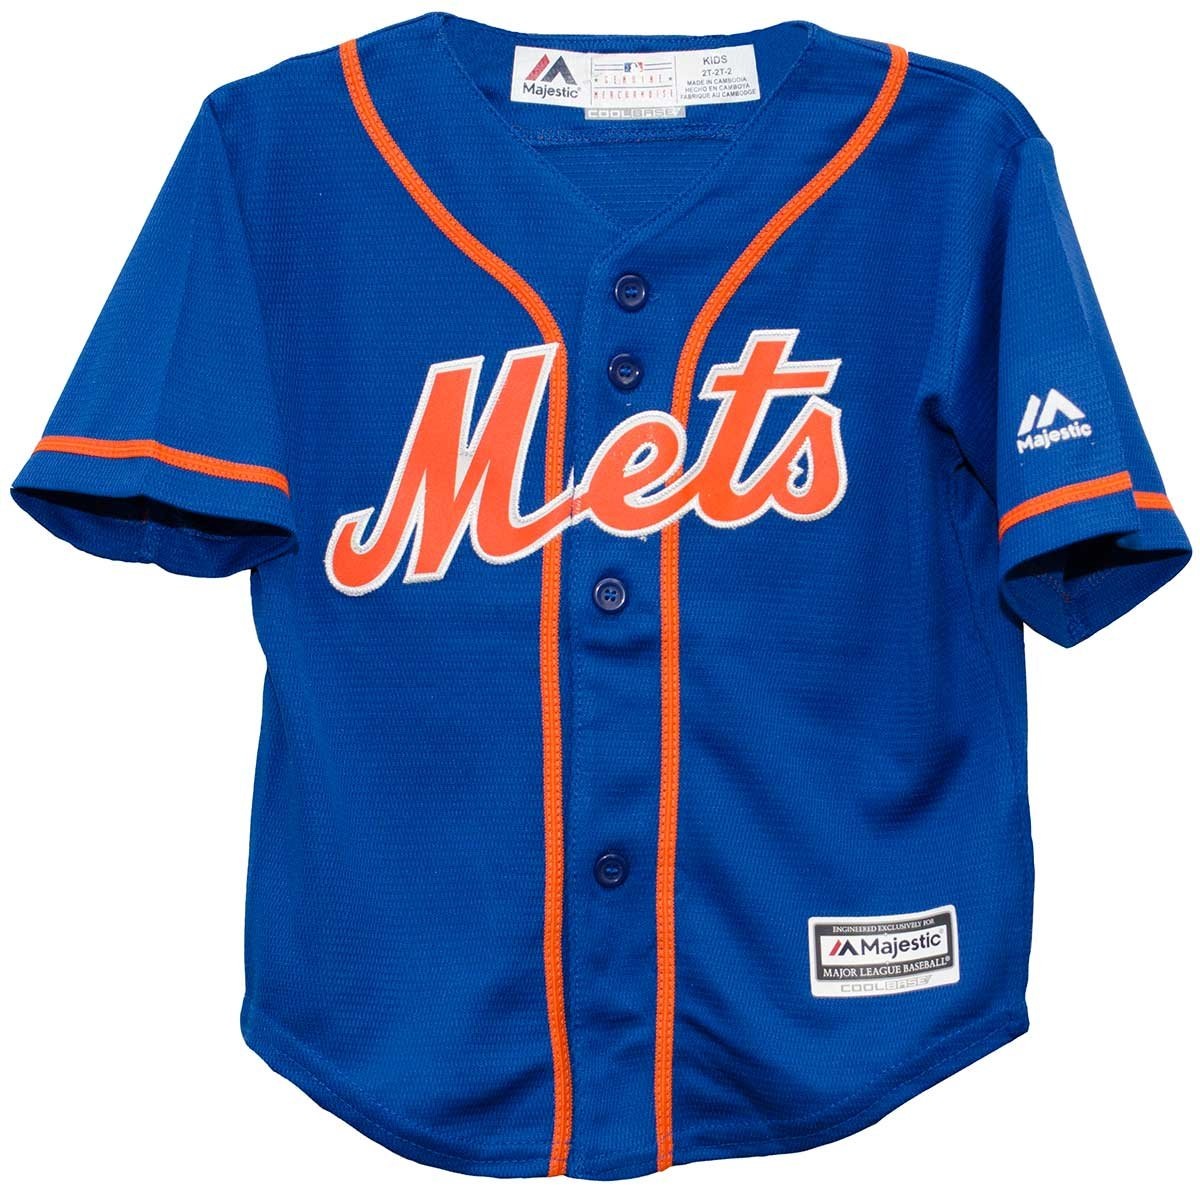 reputable site 64def 5bade Majestic New York Mets Alternate Blue Cool Base Toddler Size Jerseys